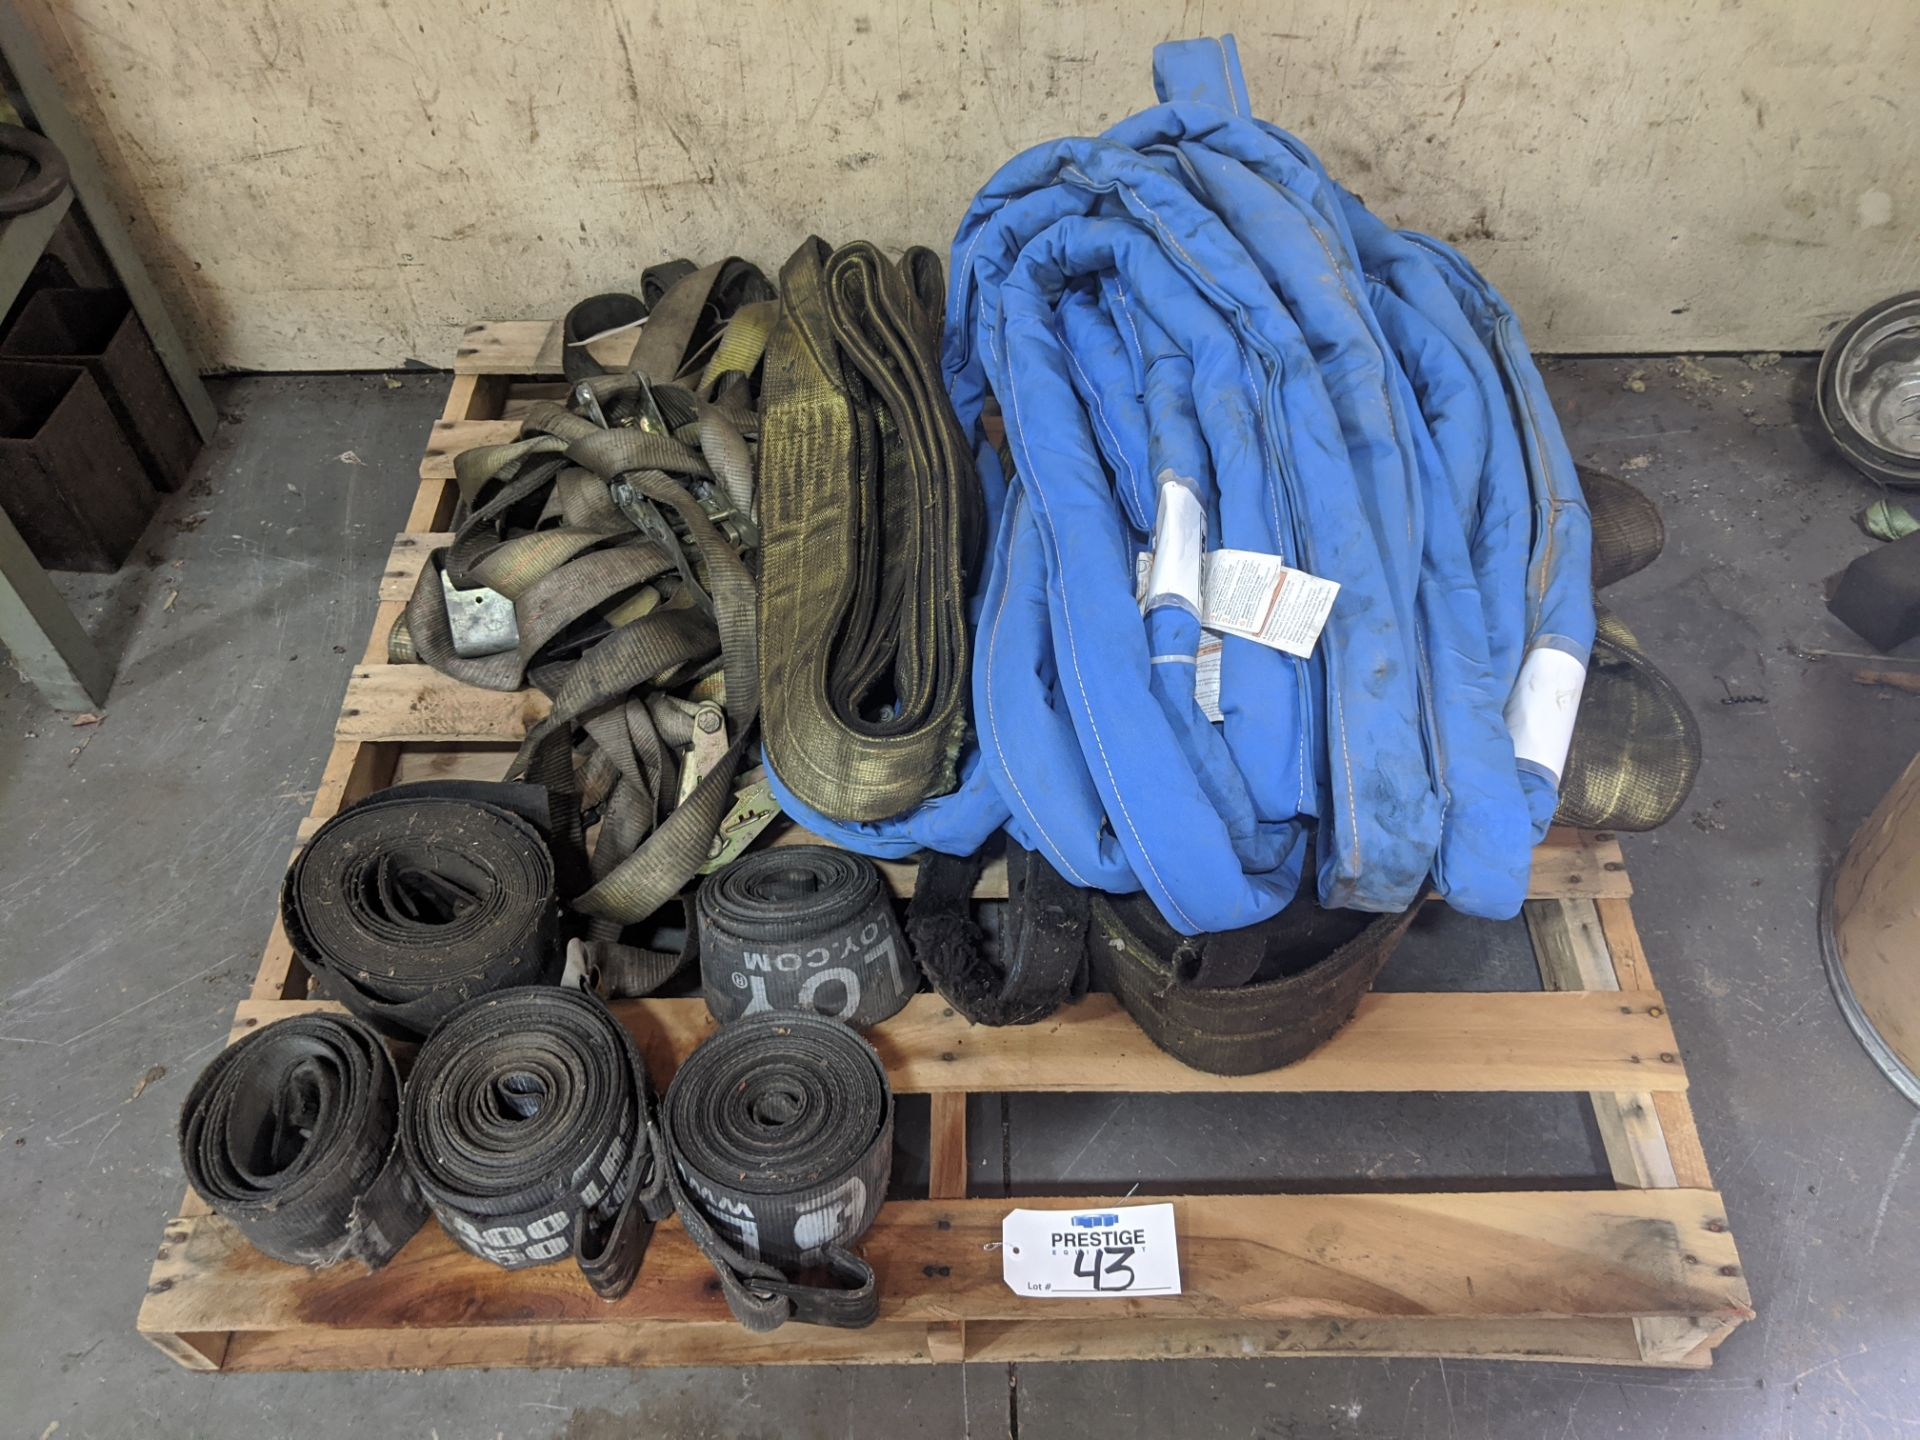 Lot 43 - Large Quantity of Synthetic Lifting Straps & Ratchet Straps